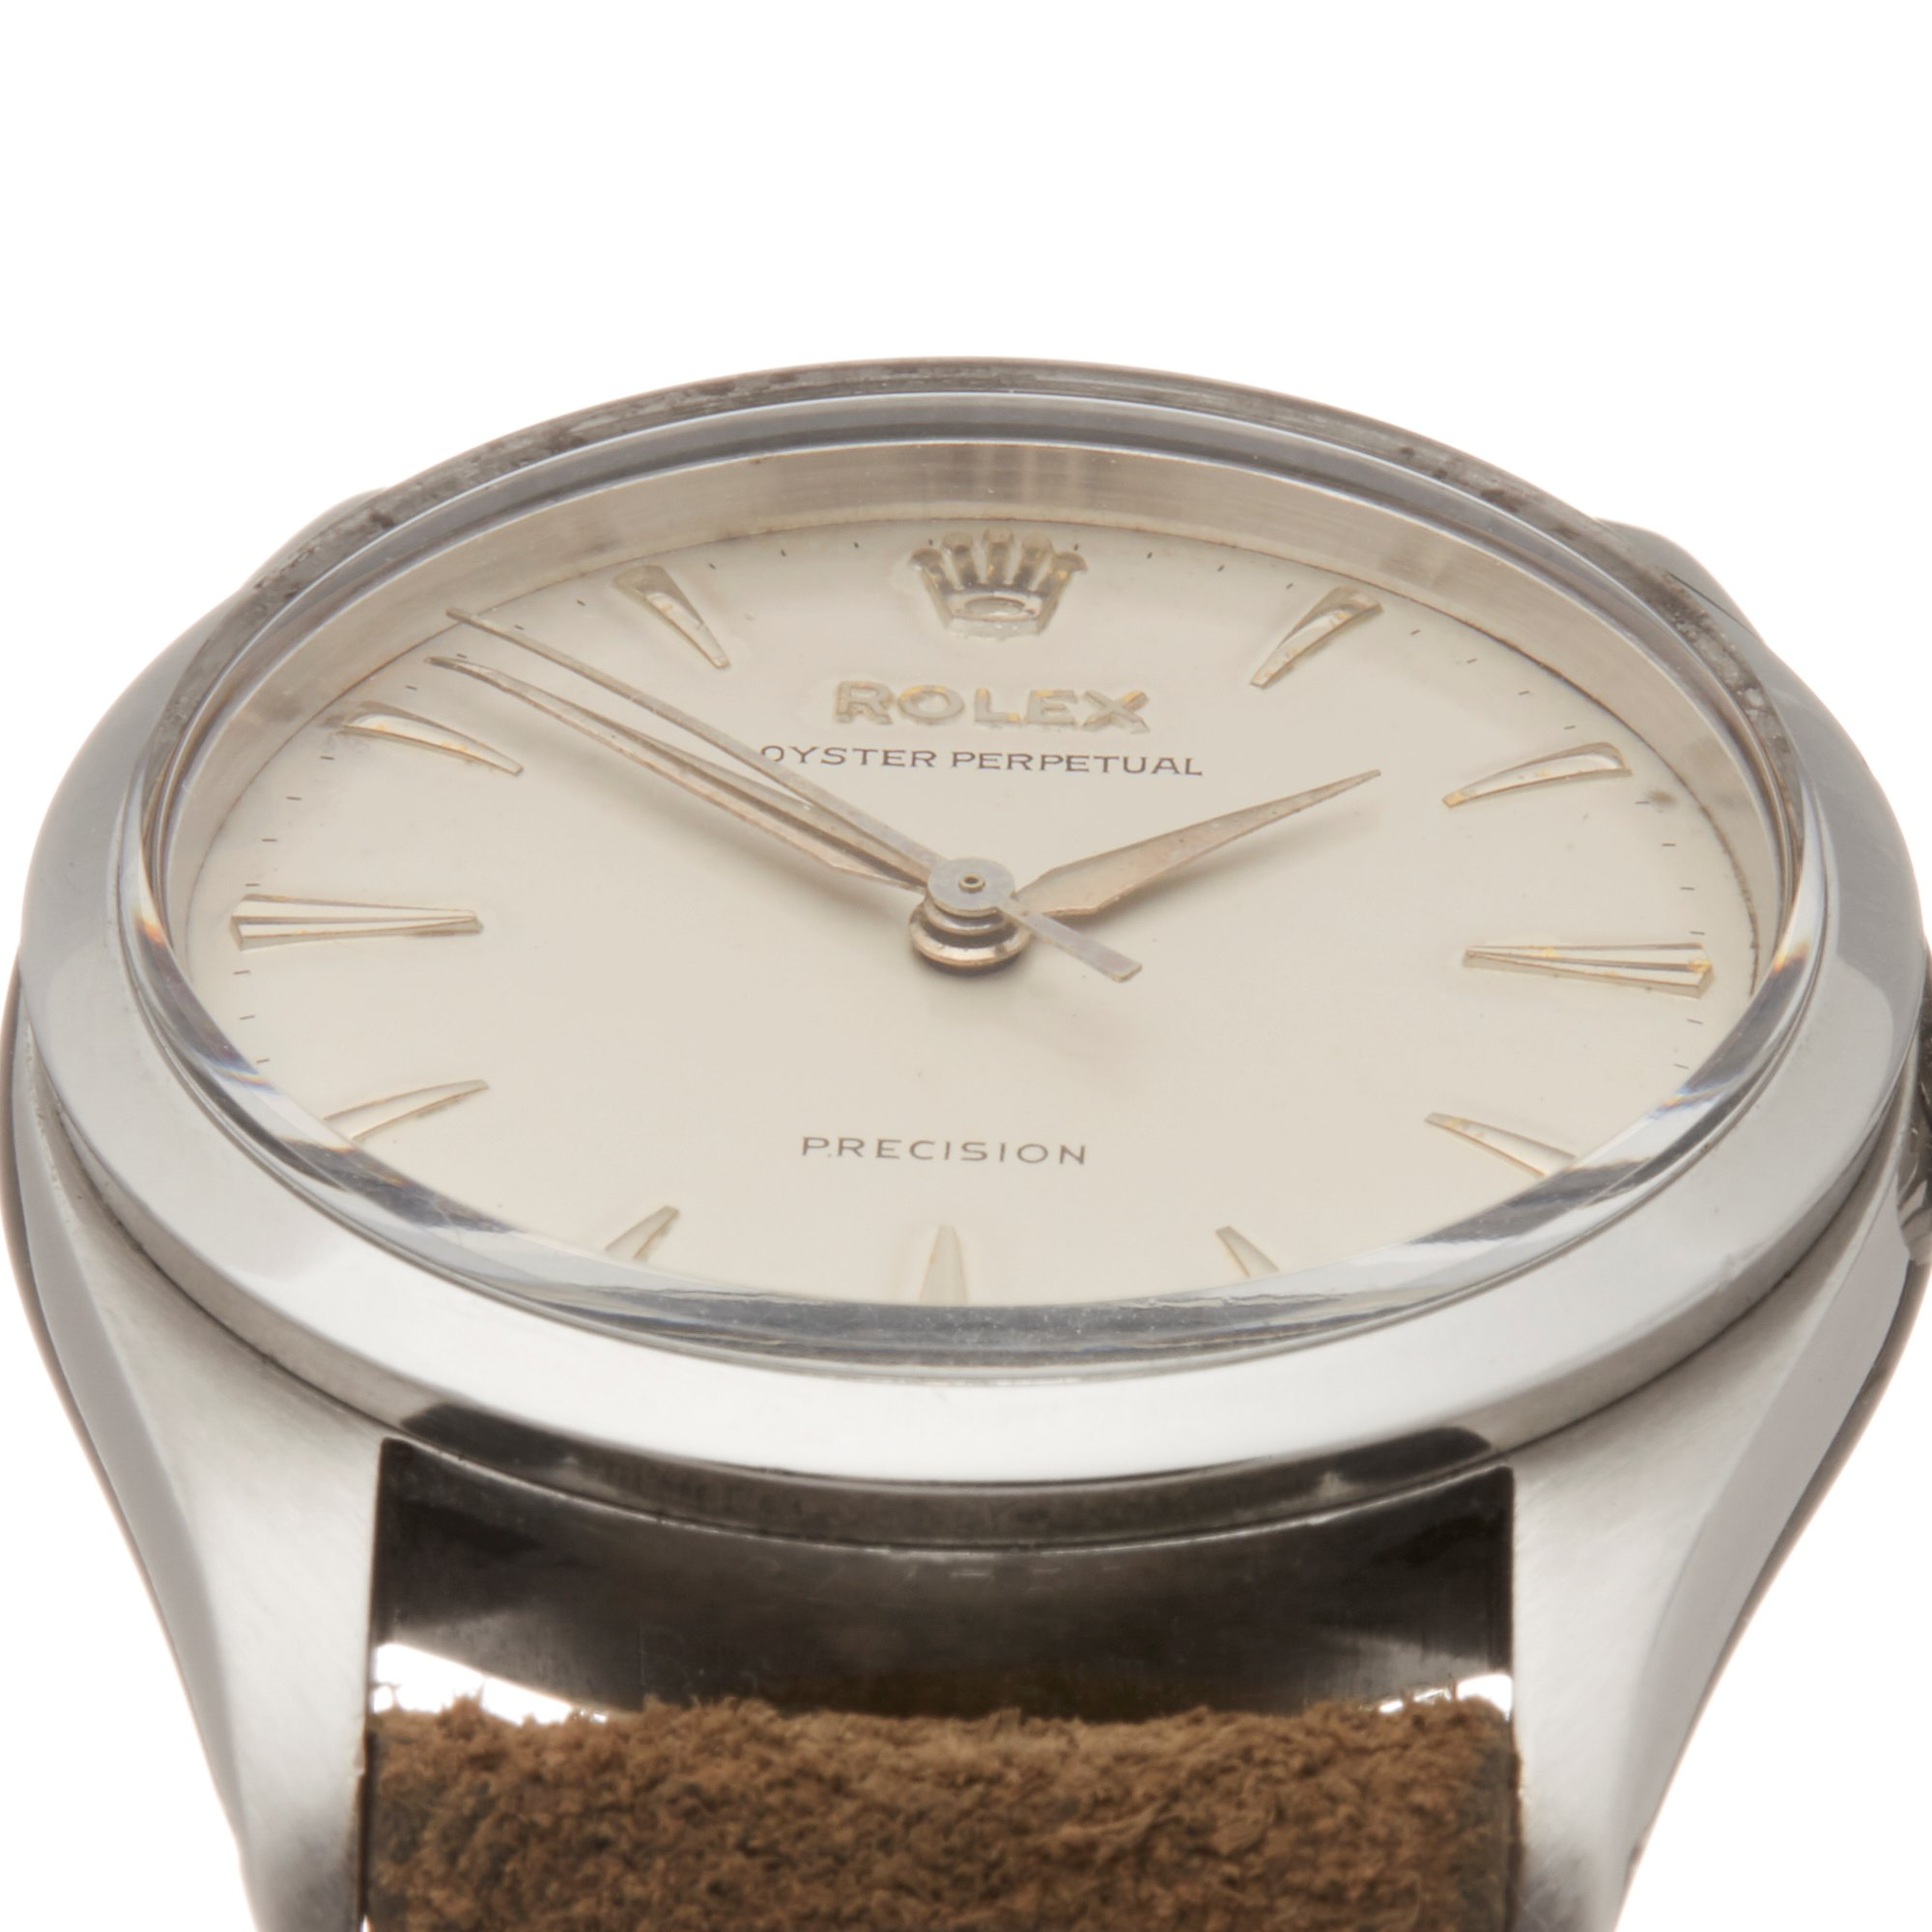 Rolex Oyster Perpetual 36 Pre-Explorer Stainless Steel 6150